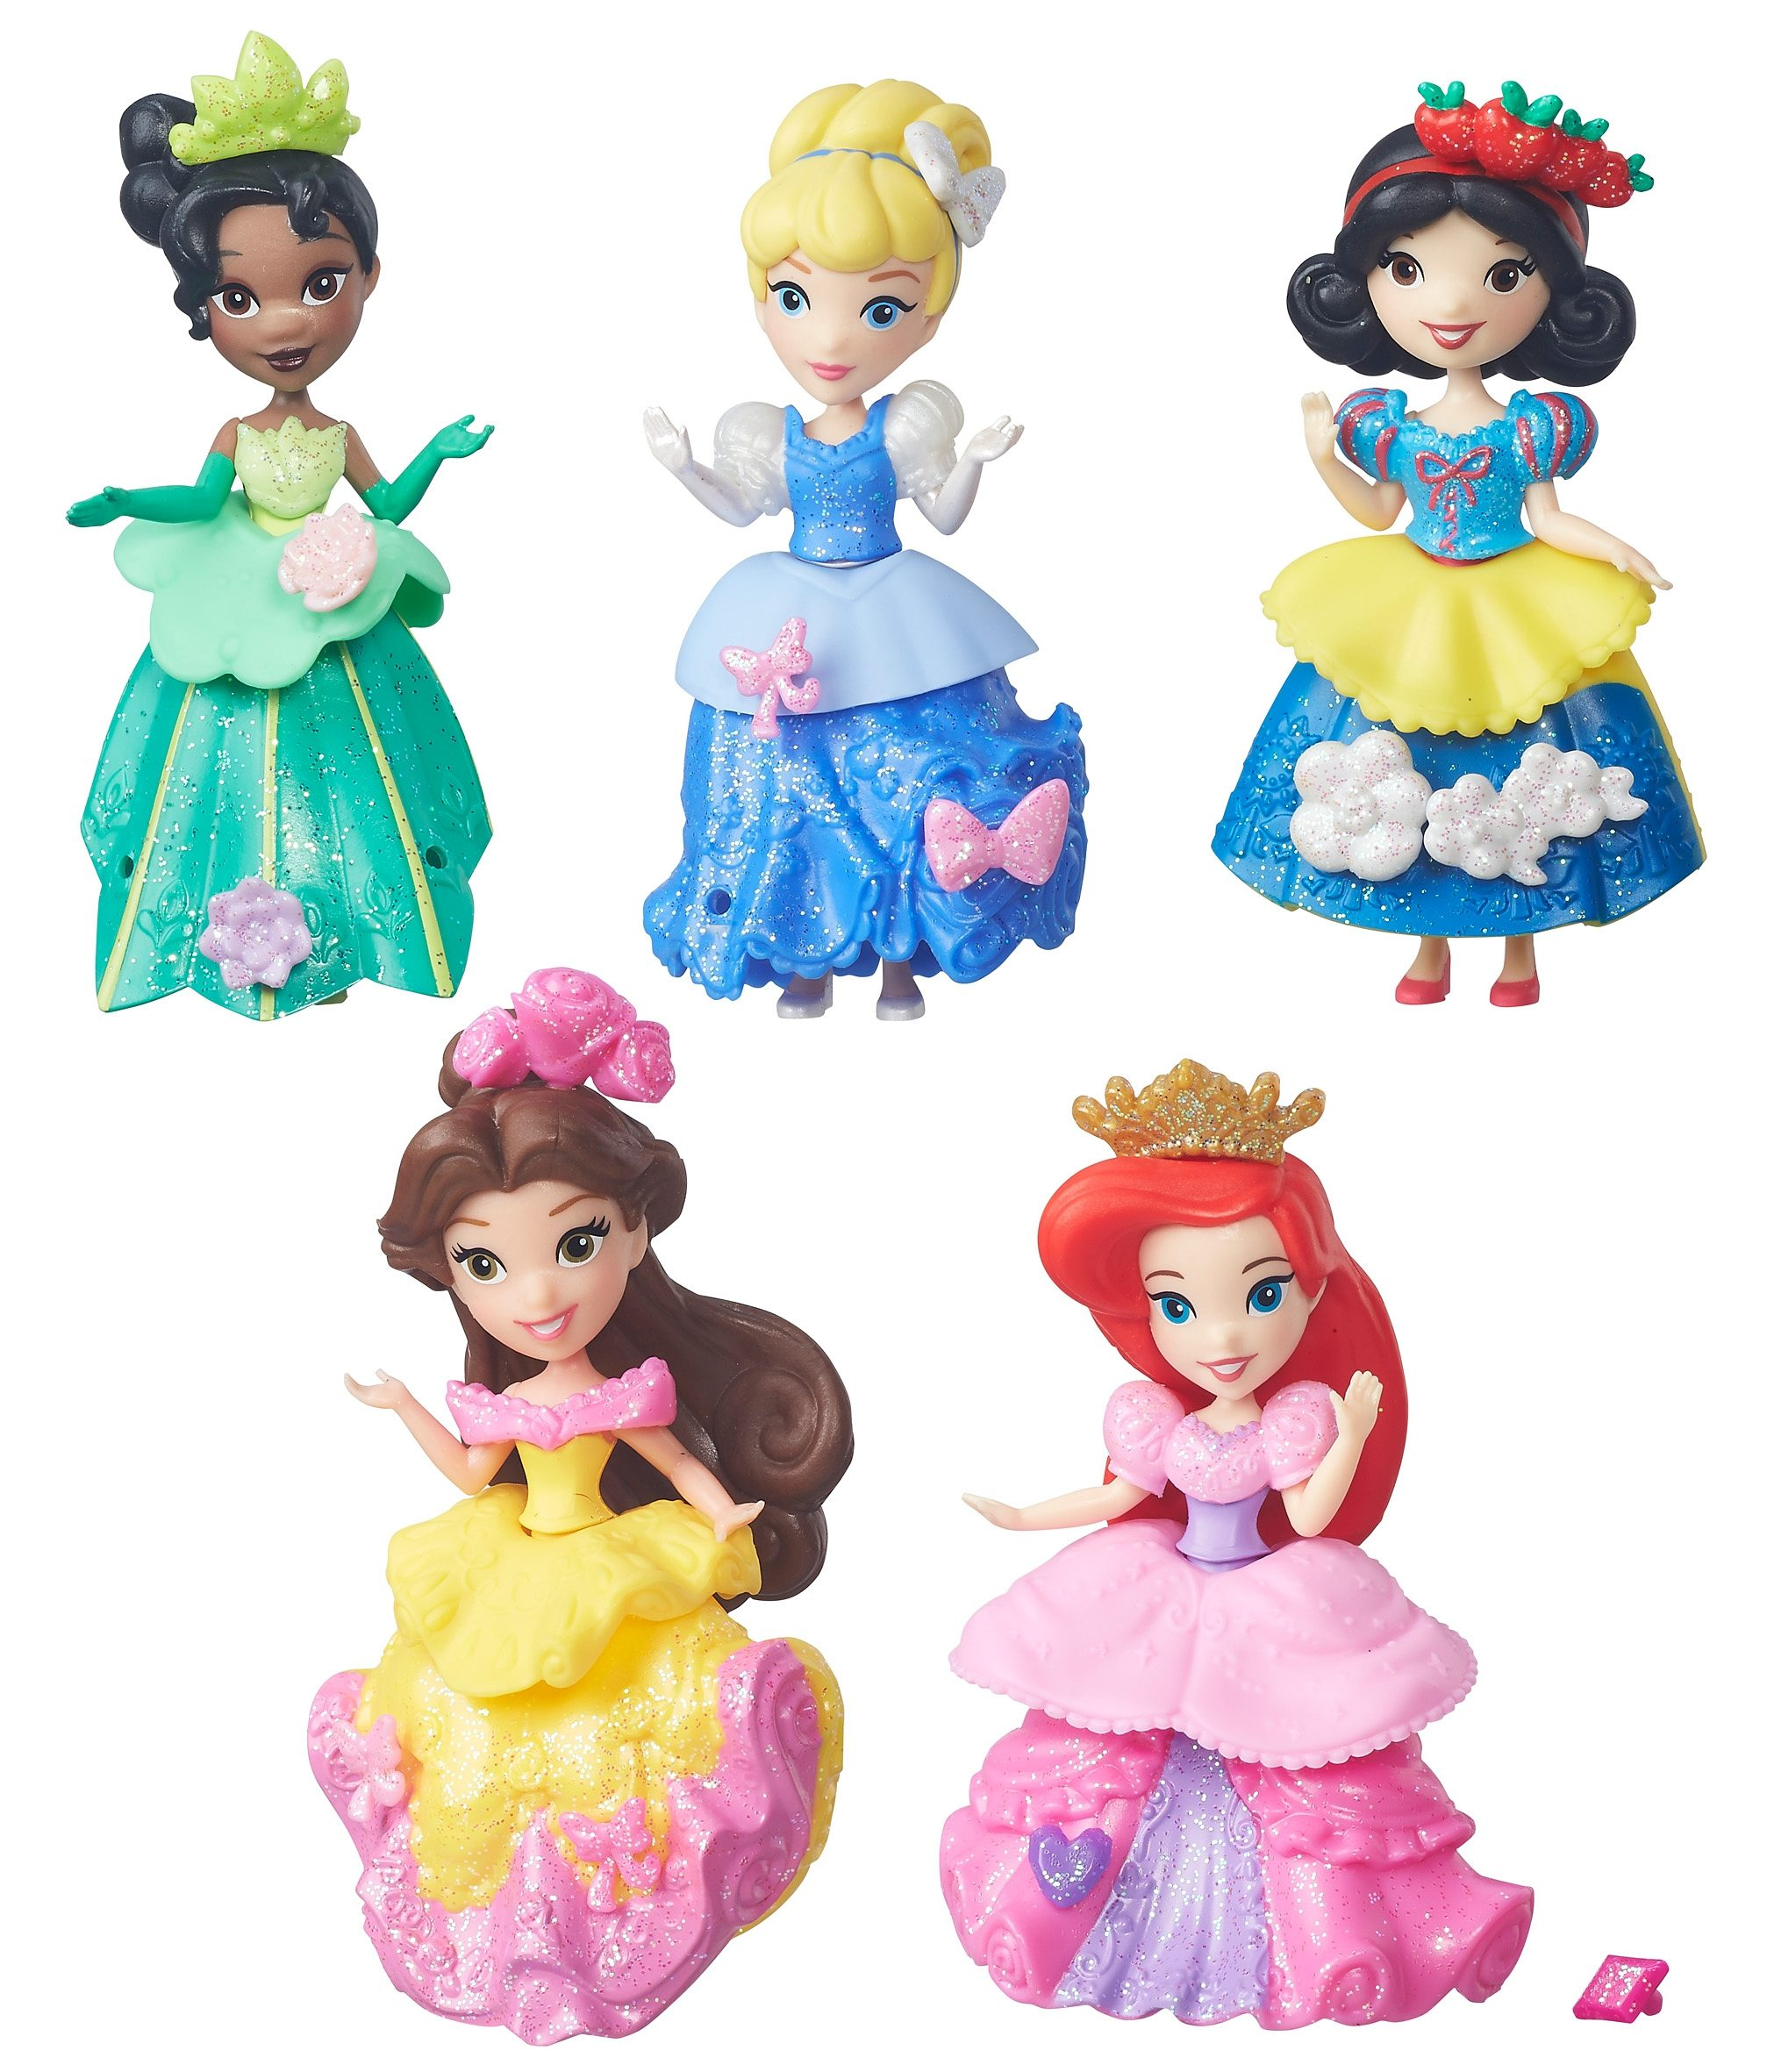 Hasbro Spielfiguren Set, »Disney Princess Little Kingdom Glitzer-Prinzessinnen« (5tlg.)